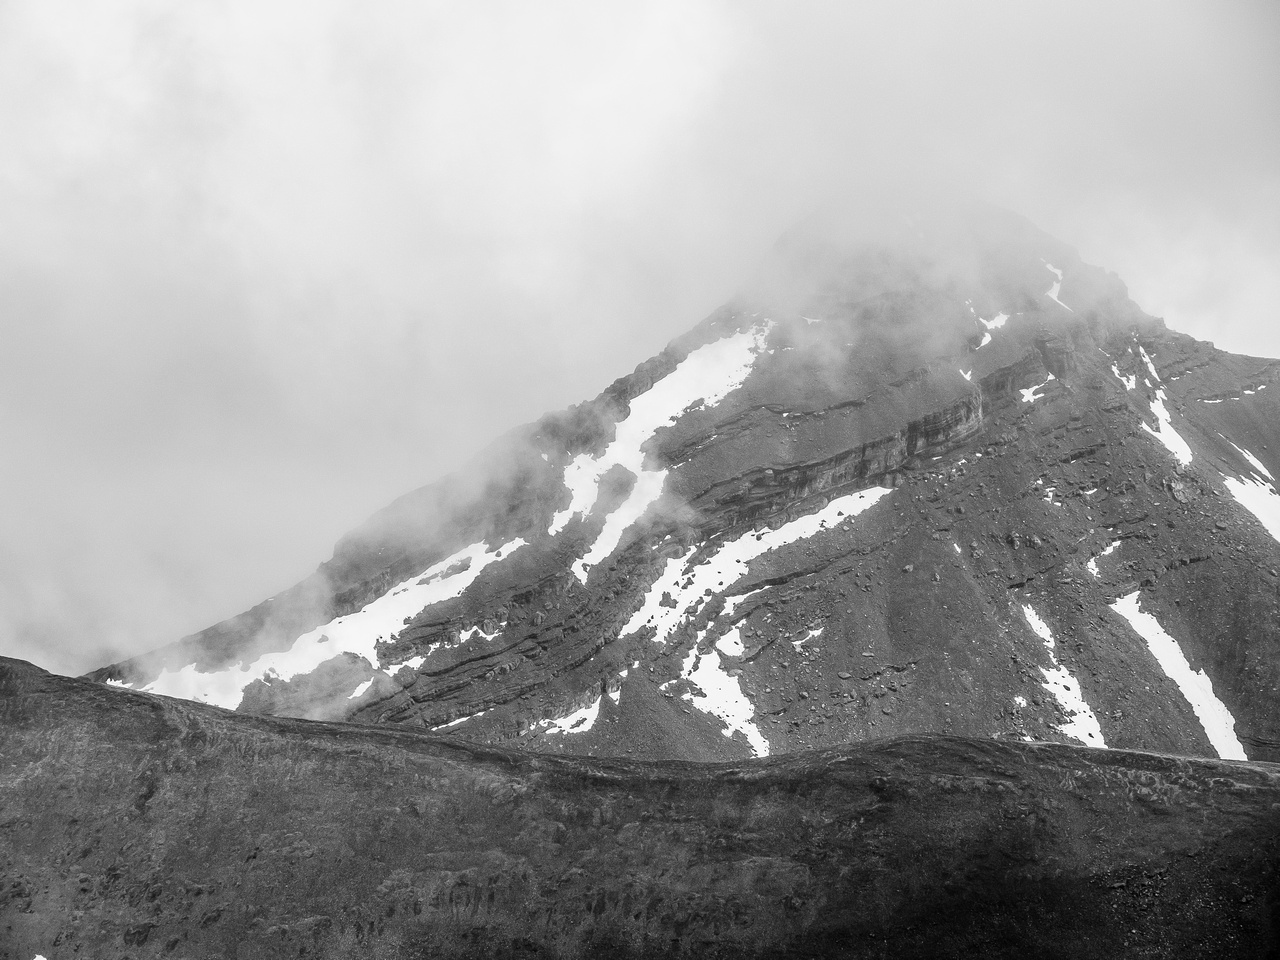 The west ridge of Mount Bogart rises into the clouds.